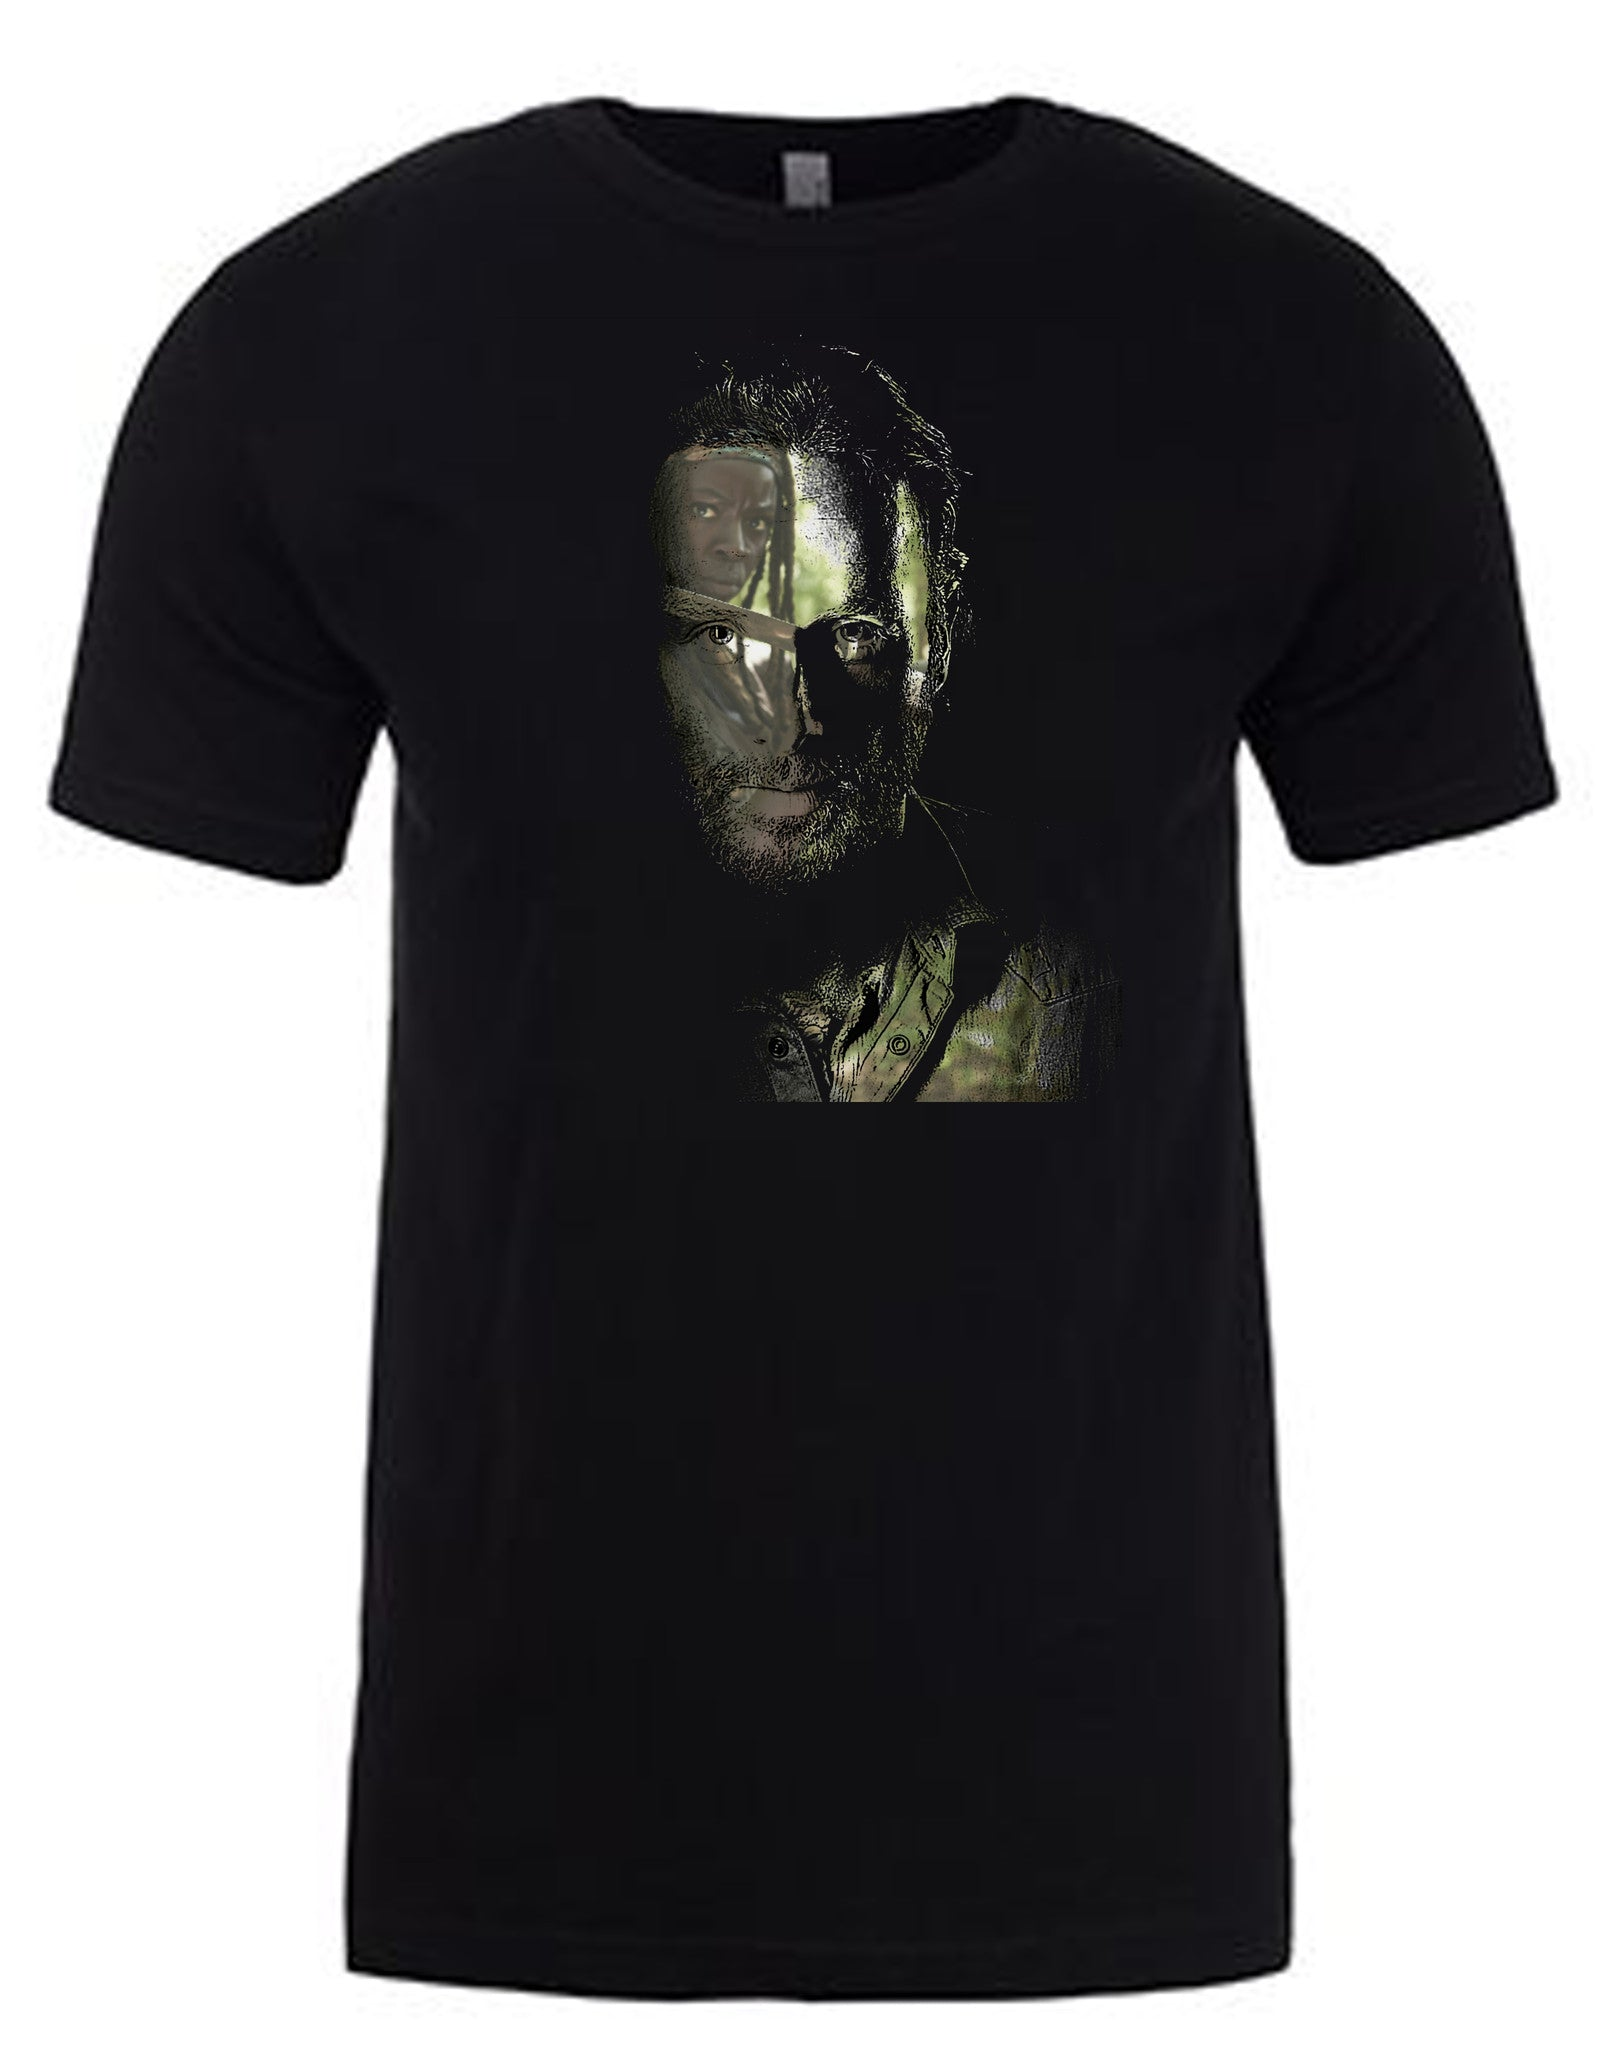 Rick Grimes T-Shirt by Lisa Jaye